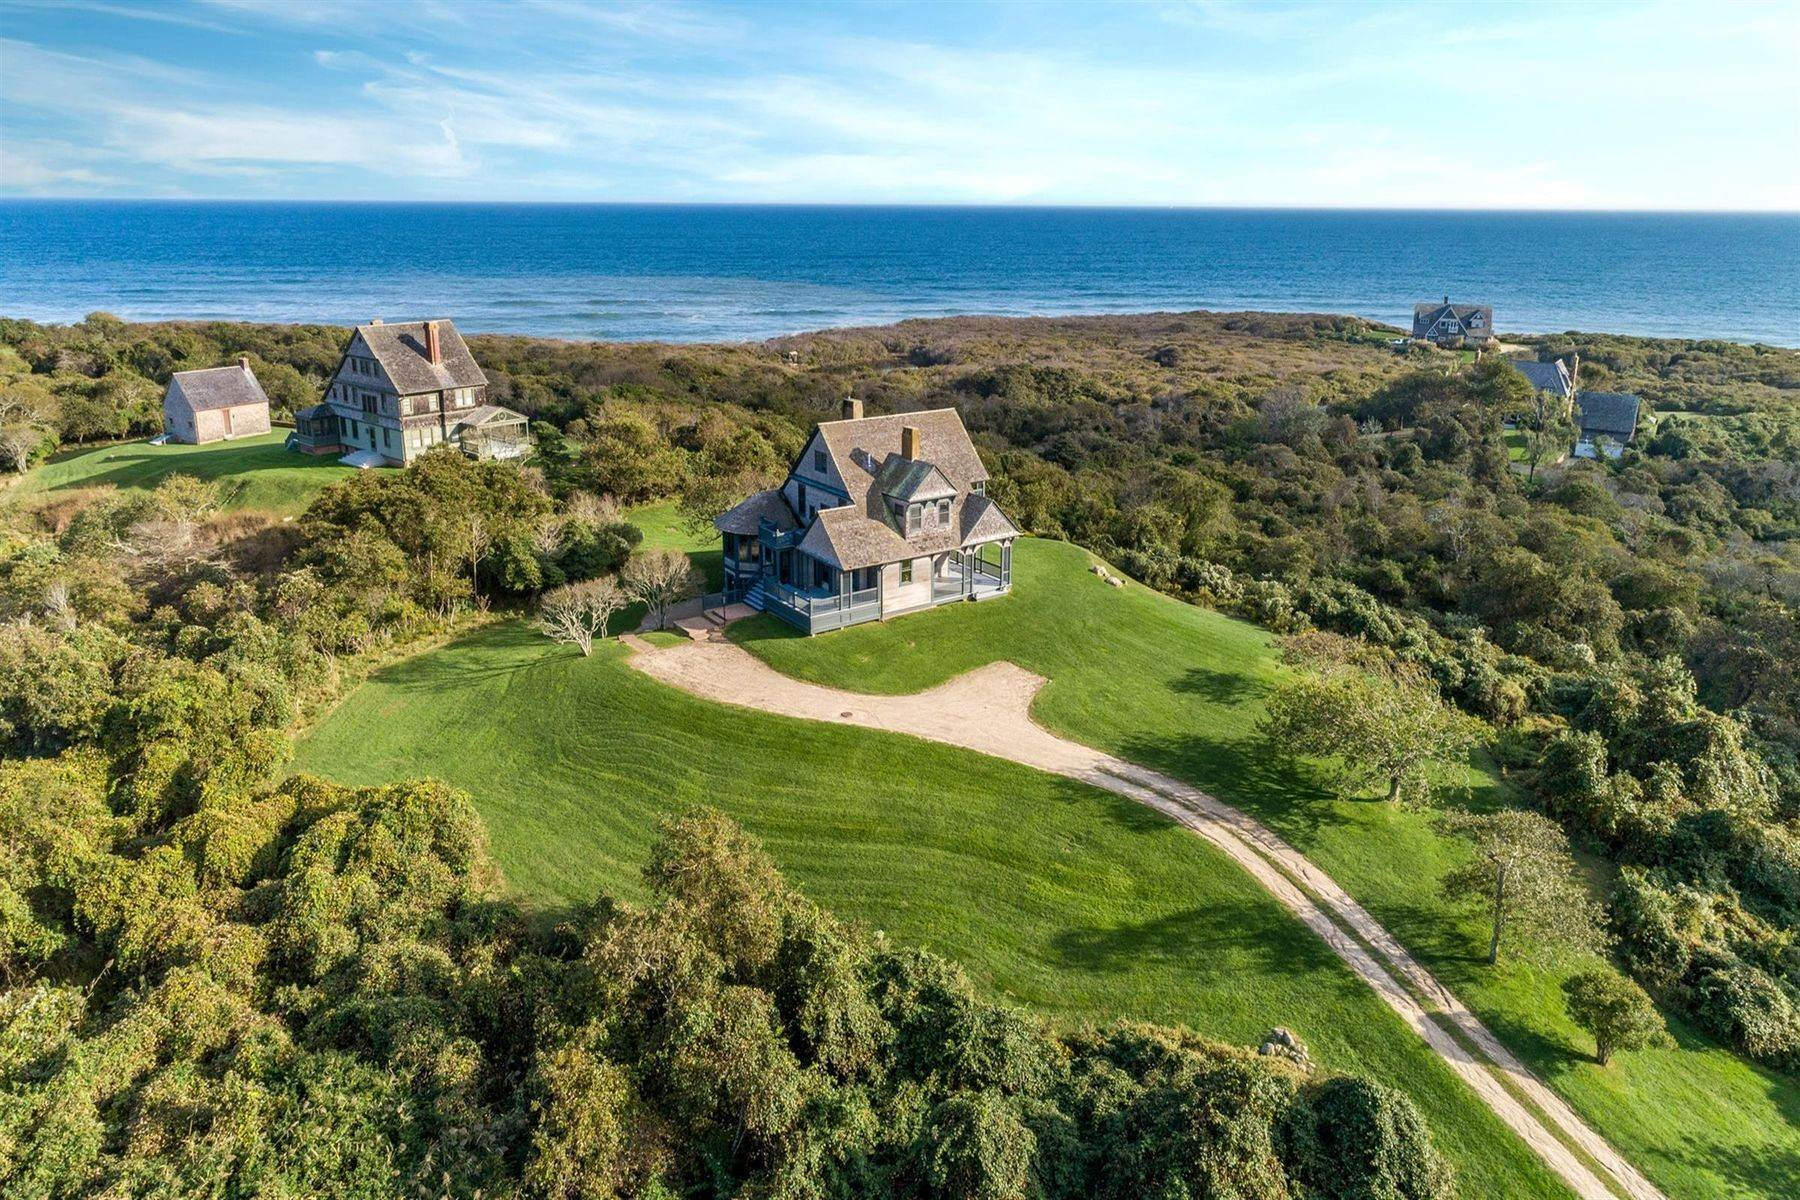 Single Family Homes for Sale at Stanford White Ocean View Cottage 153 Deforest Road Montauk, New York 11954 United States